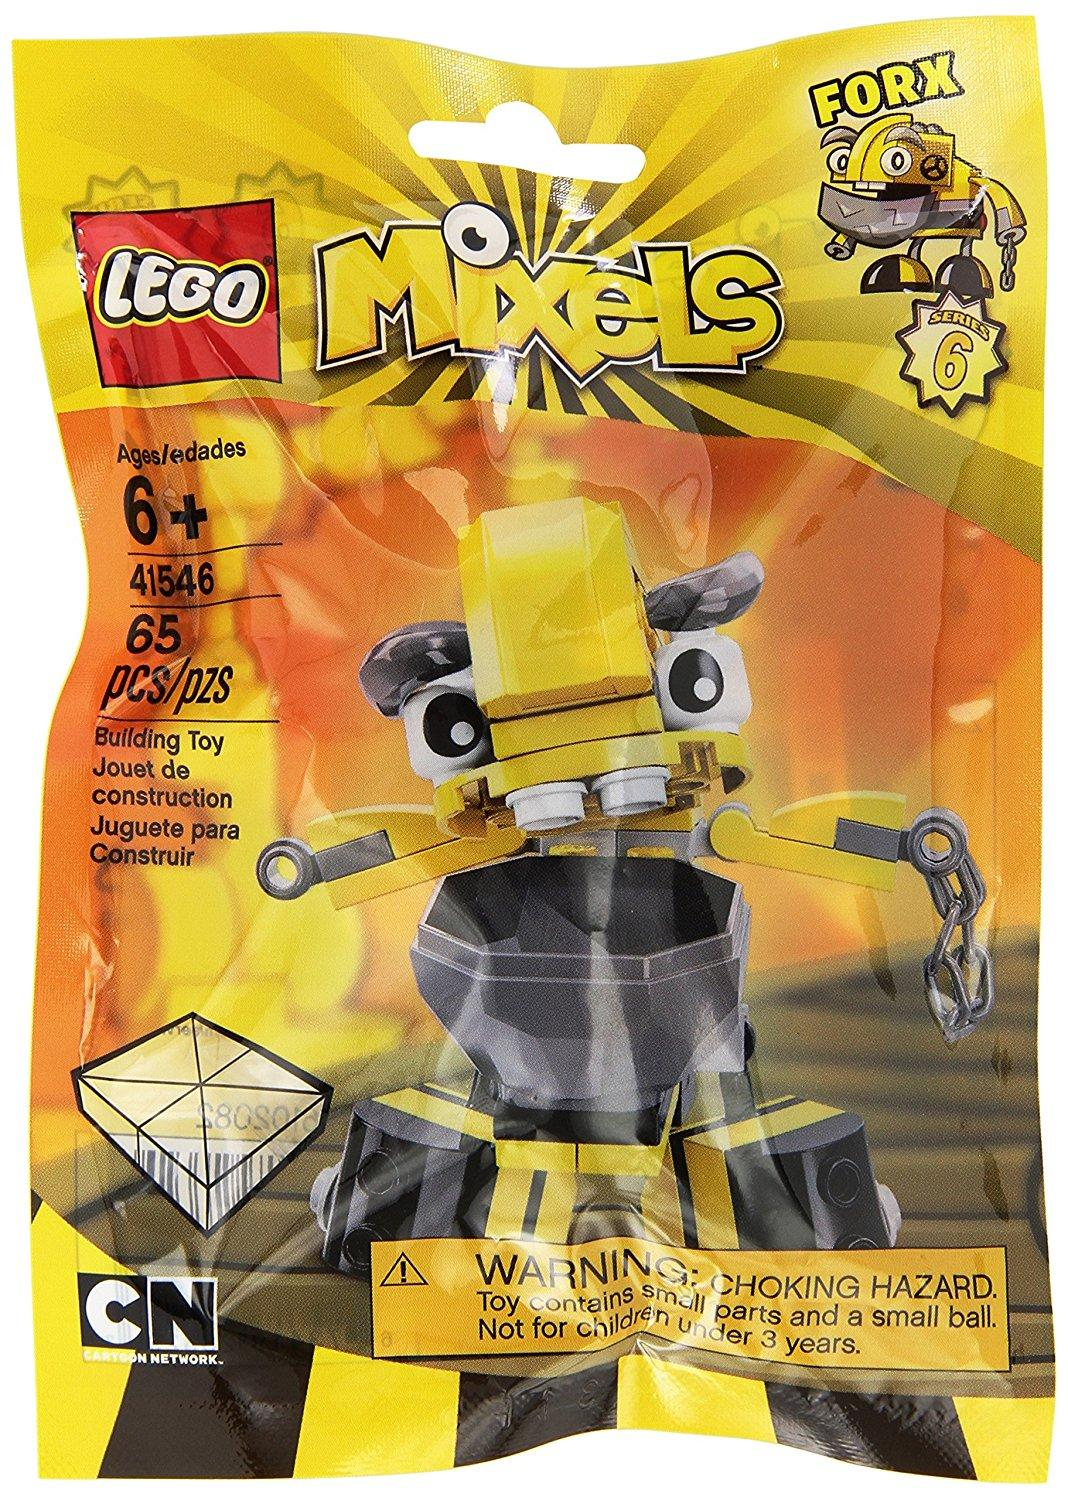 Buy Sell Cheapest Lego City 6 Best Quality Product Deals Bionicle Skull Scorpio 70794 Mixels Forx 41546 Robot Series